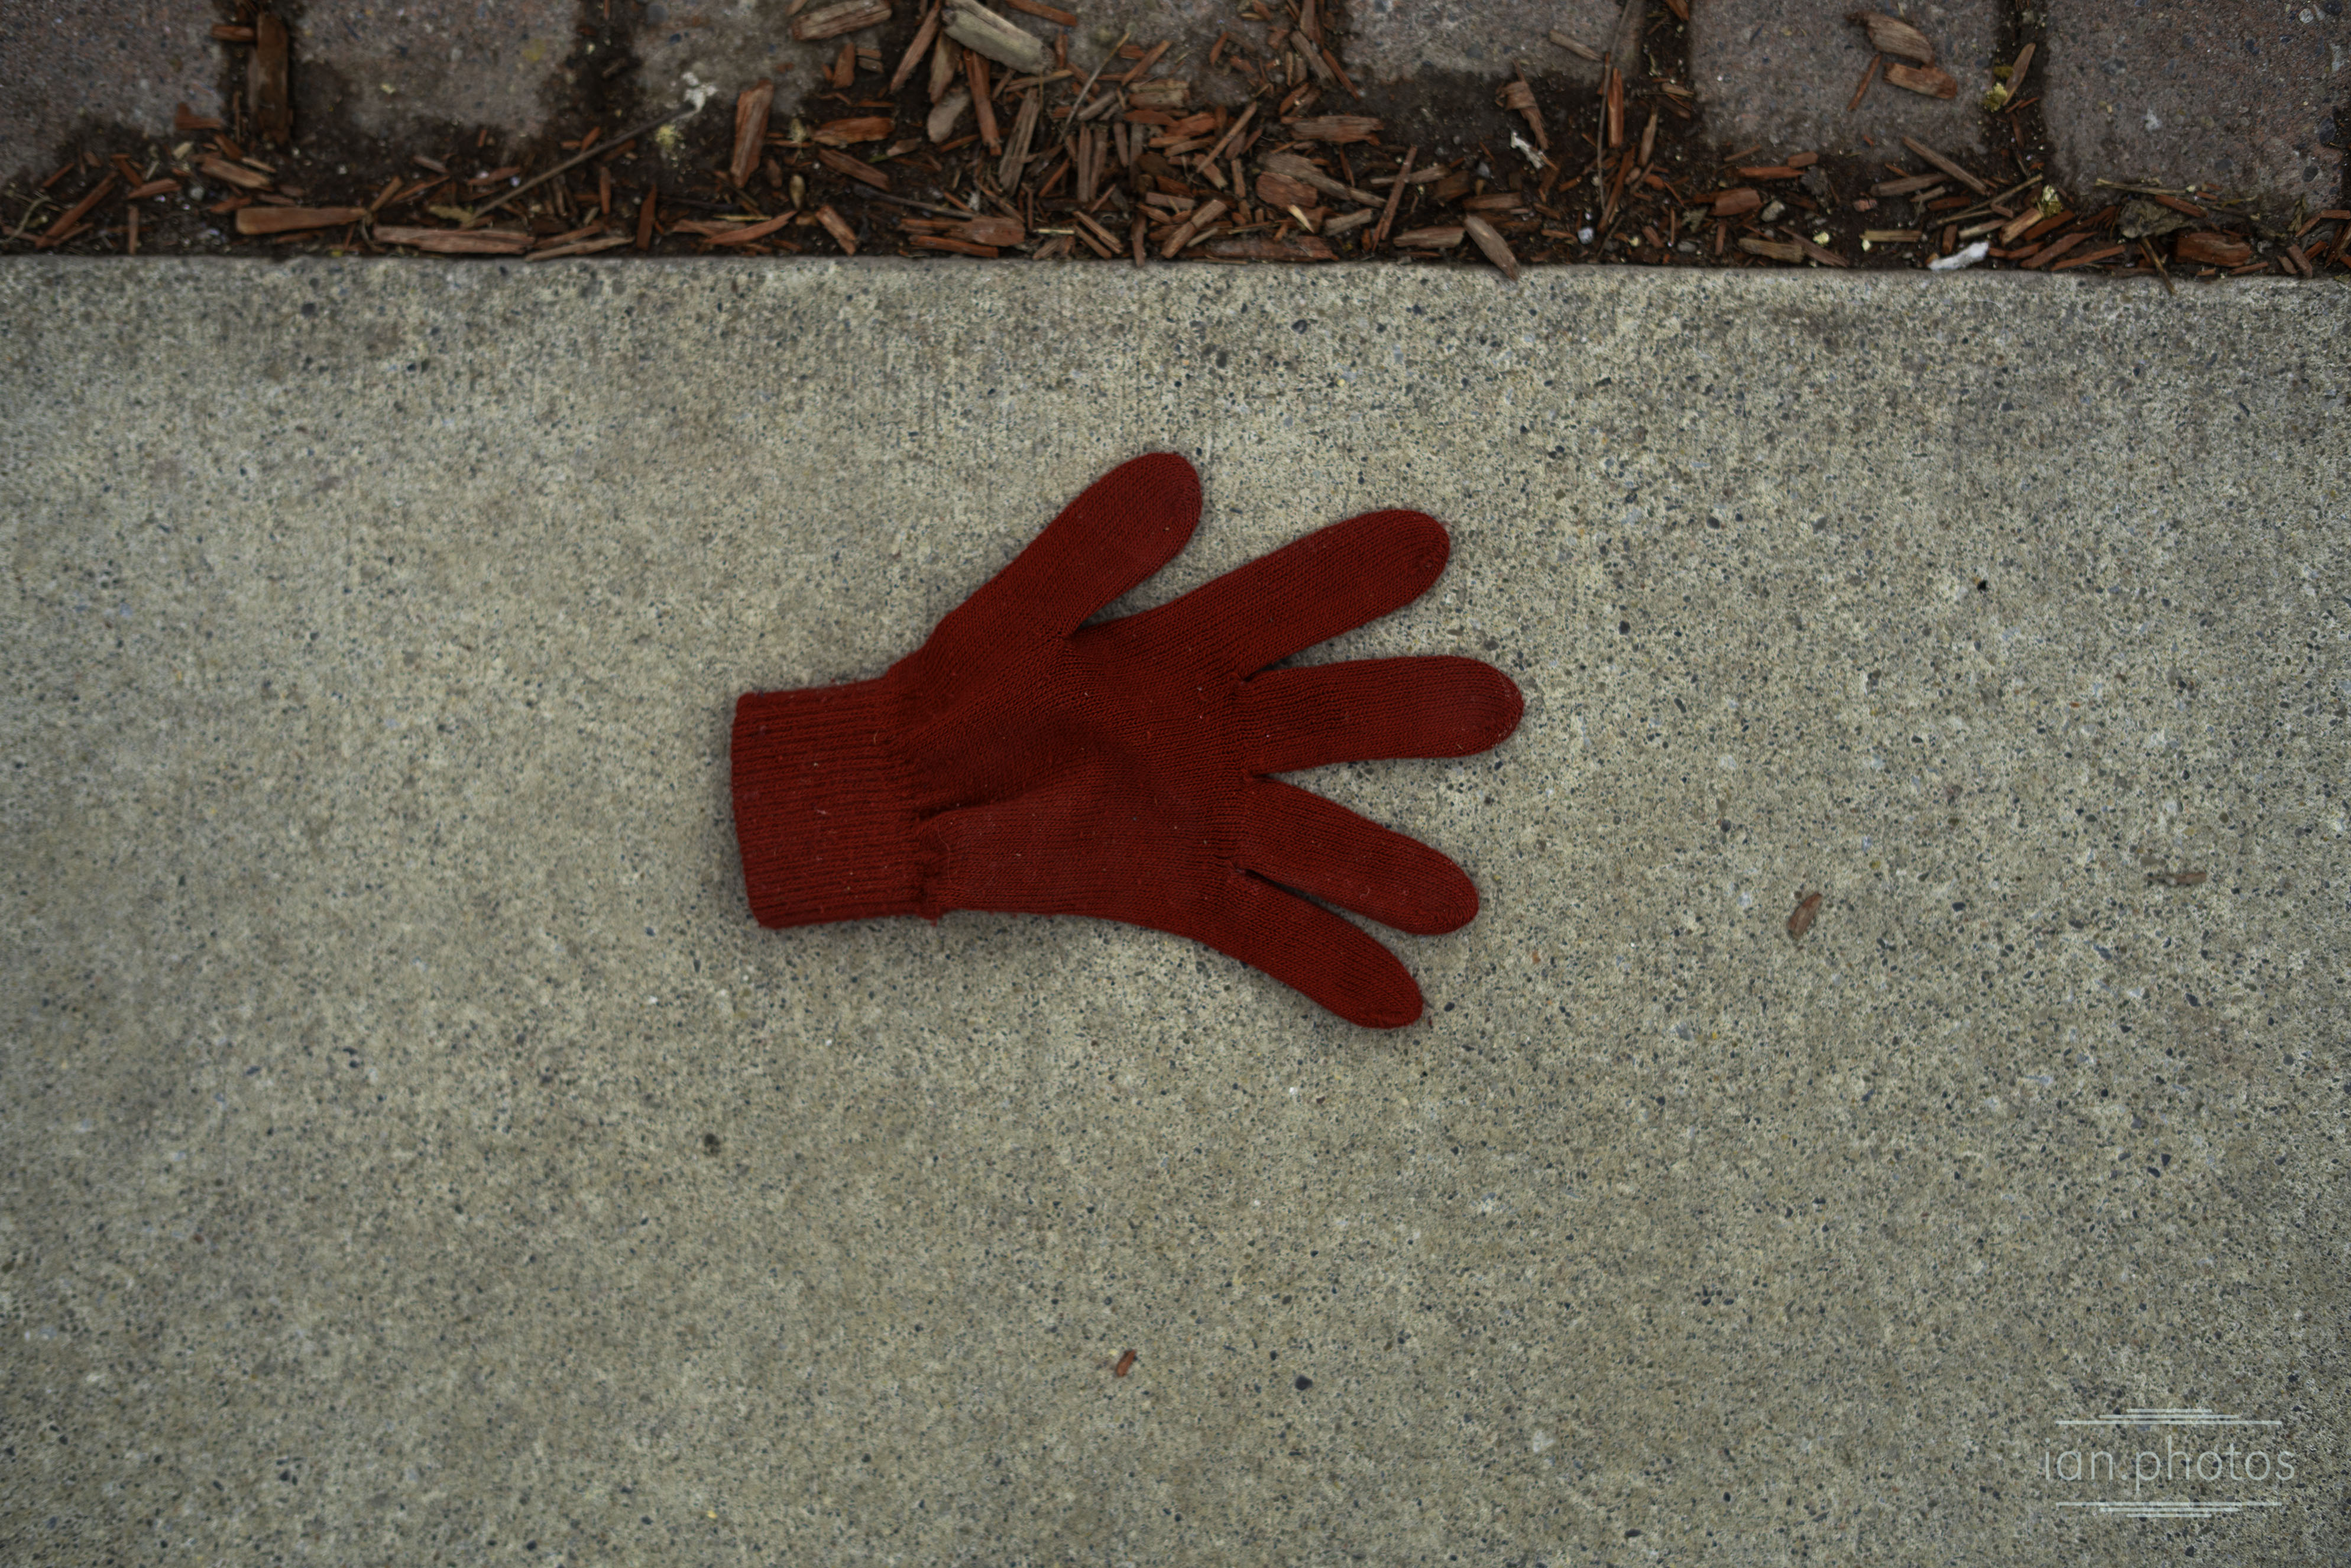 Lonely Red Glove | ian.photos